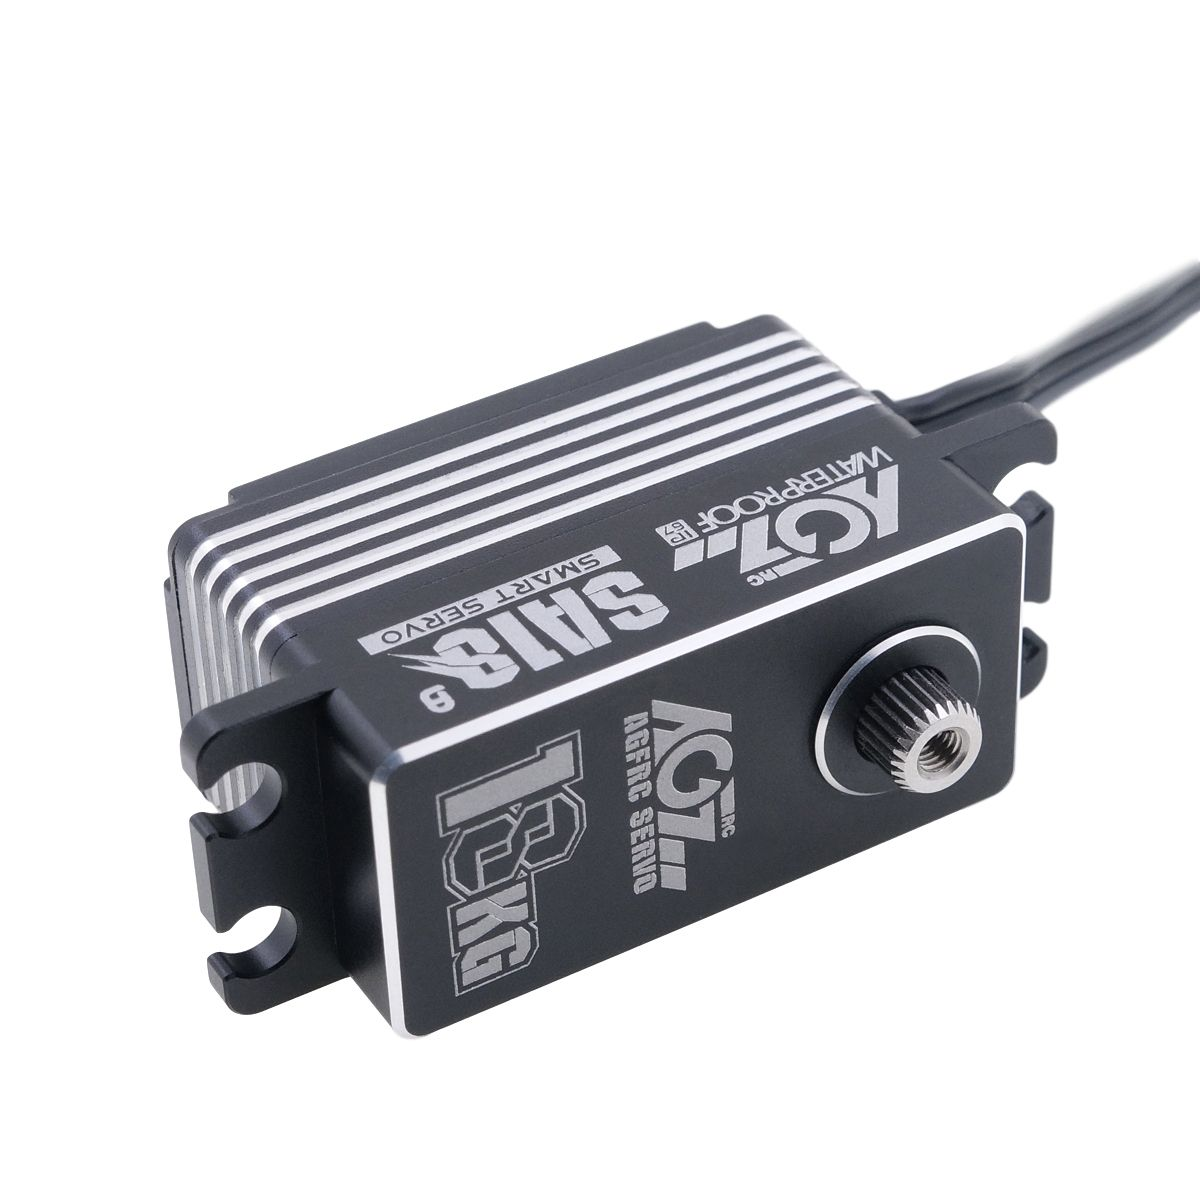 SA18 Wide Voltage Capability Aluminum Case 180 Degree Programmable Low Profile Servo for RC Boat